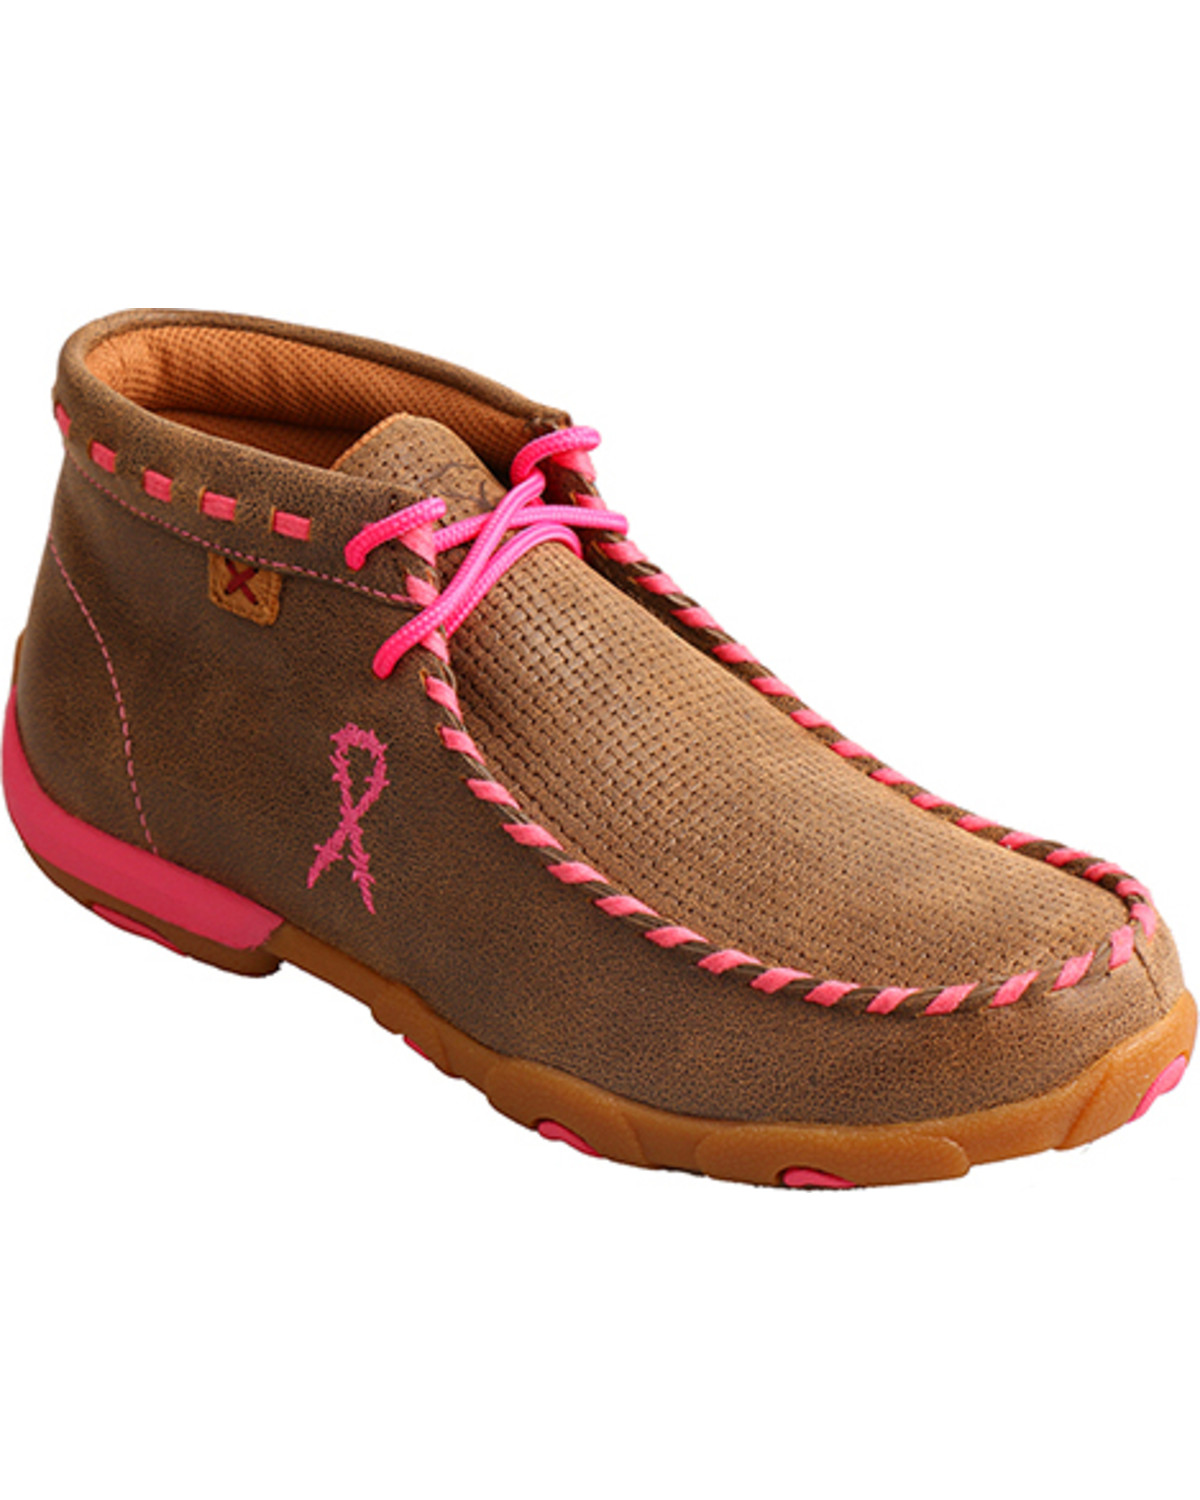 bde4b3ca62a Twisted X Boots Women s Driving Moccasins